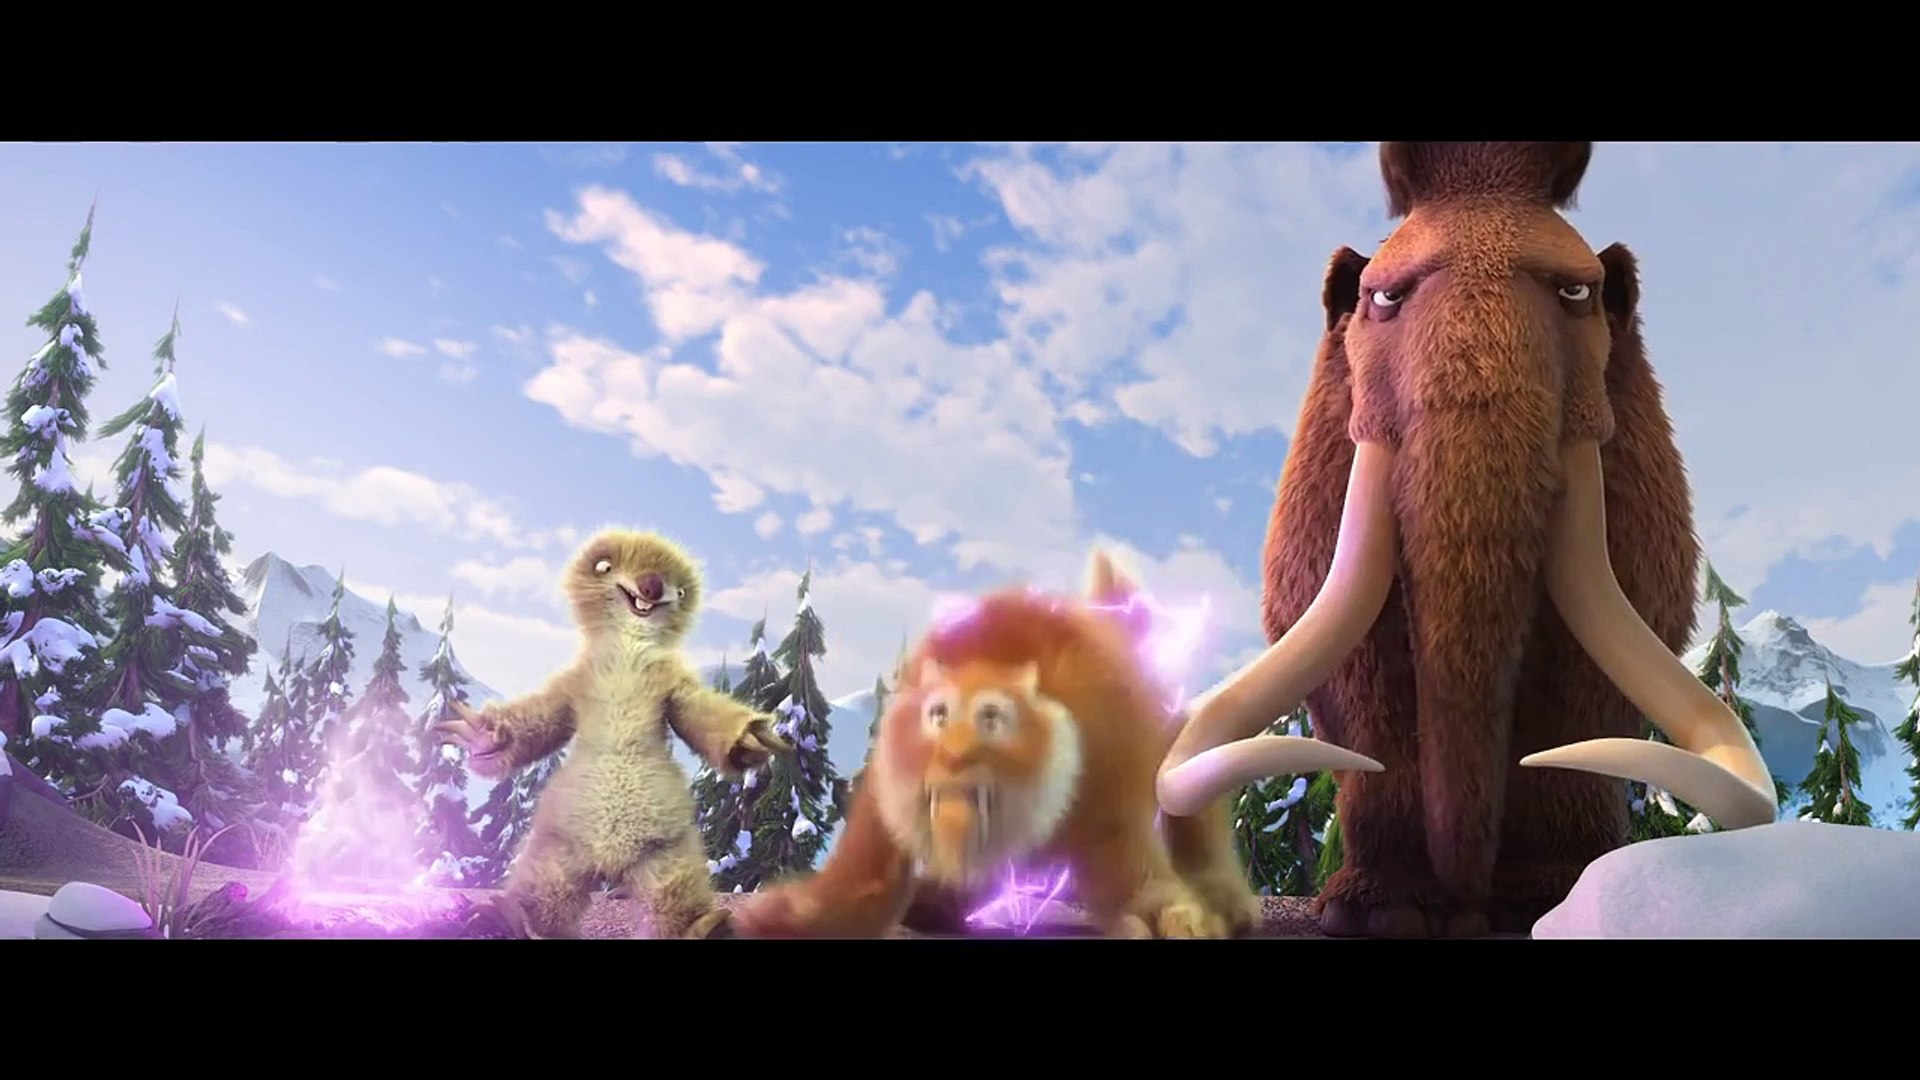 Ice Age Collision Course Official International Trailer 1 (2016) - Ray Romano Animated Movie HD new